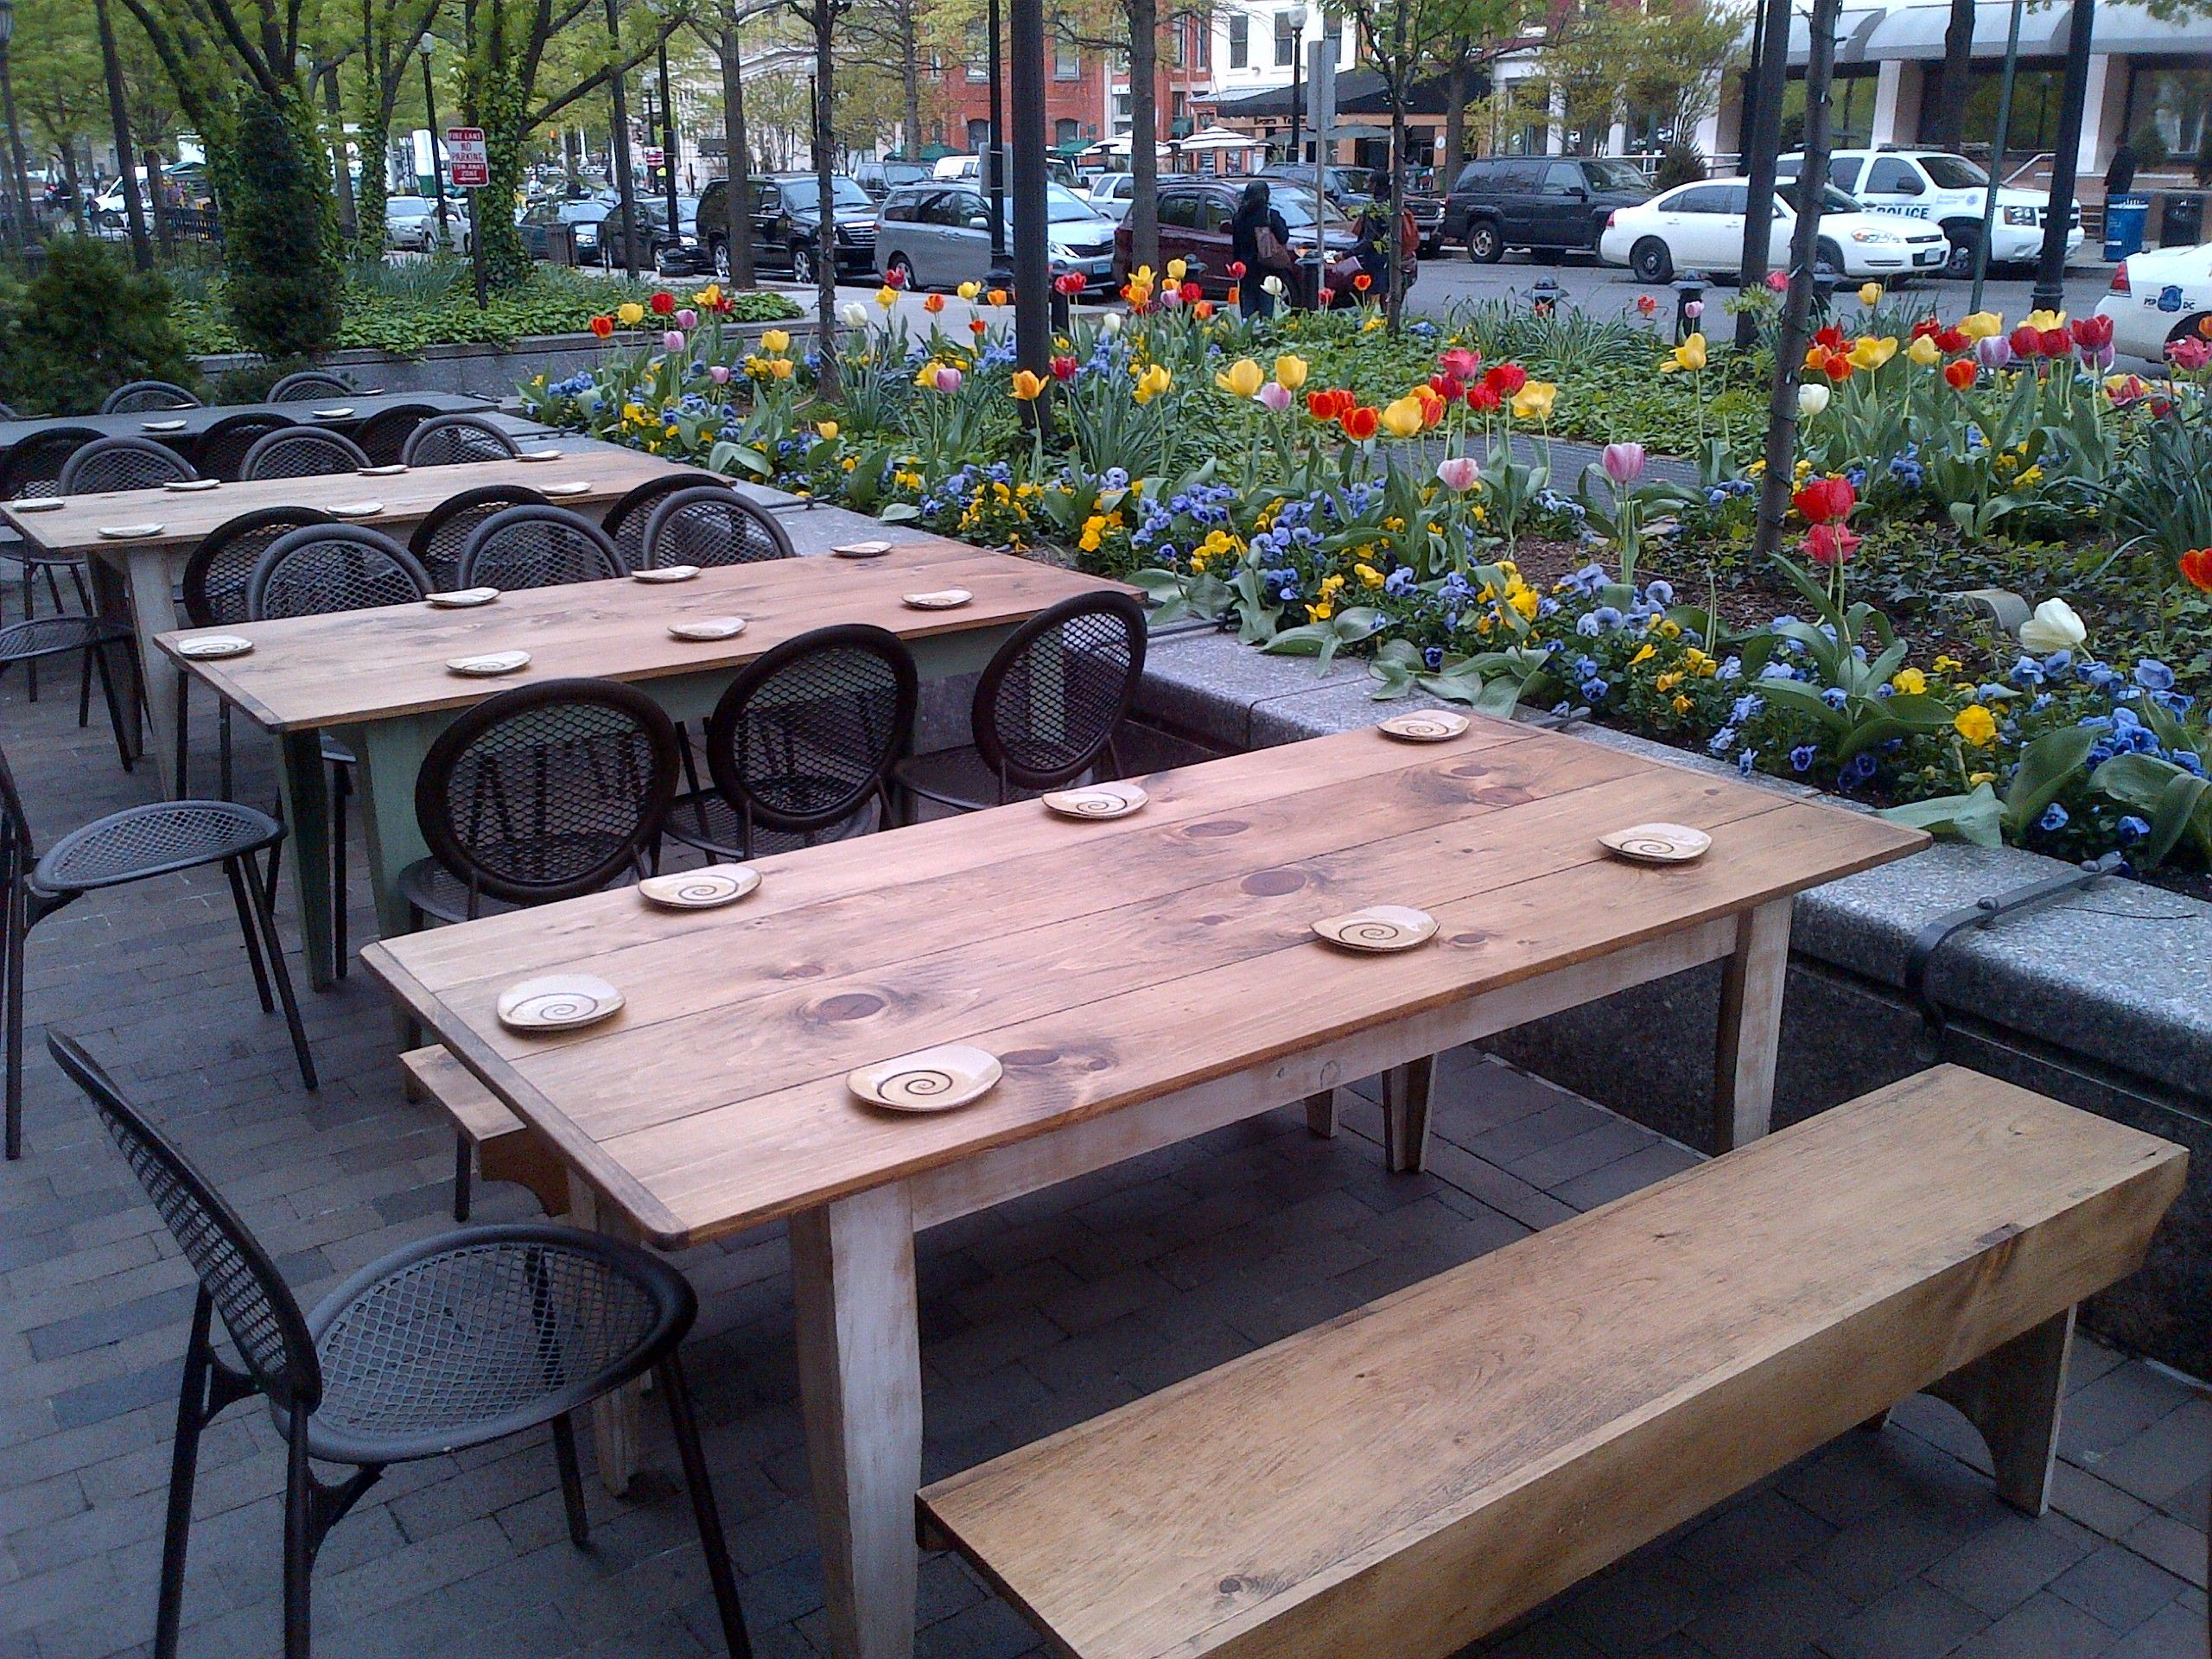 Best ideas about Restaurant Patio Furniture . Save or Pin Nice spring flowers and tulips around an outside patio at Now.